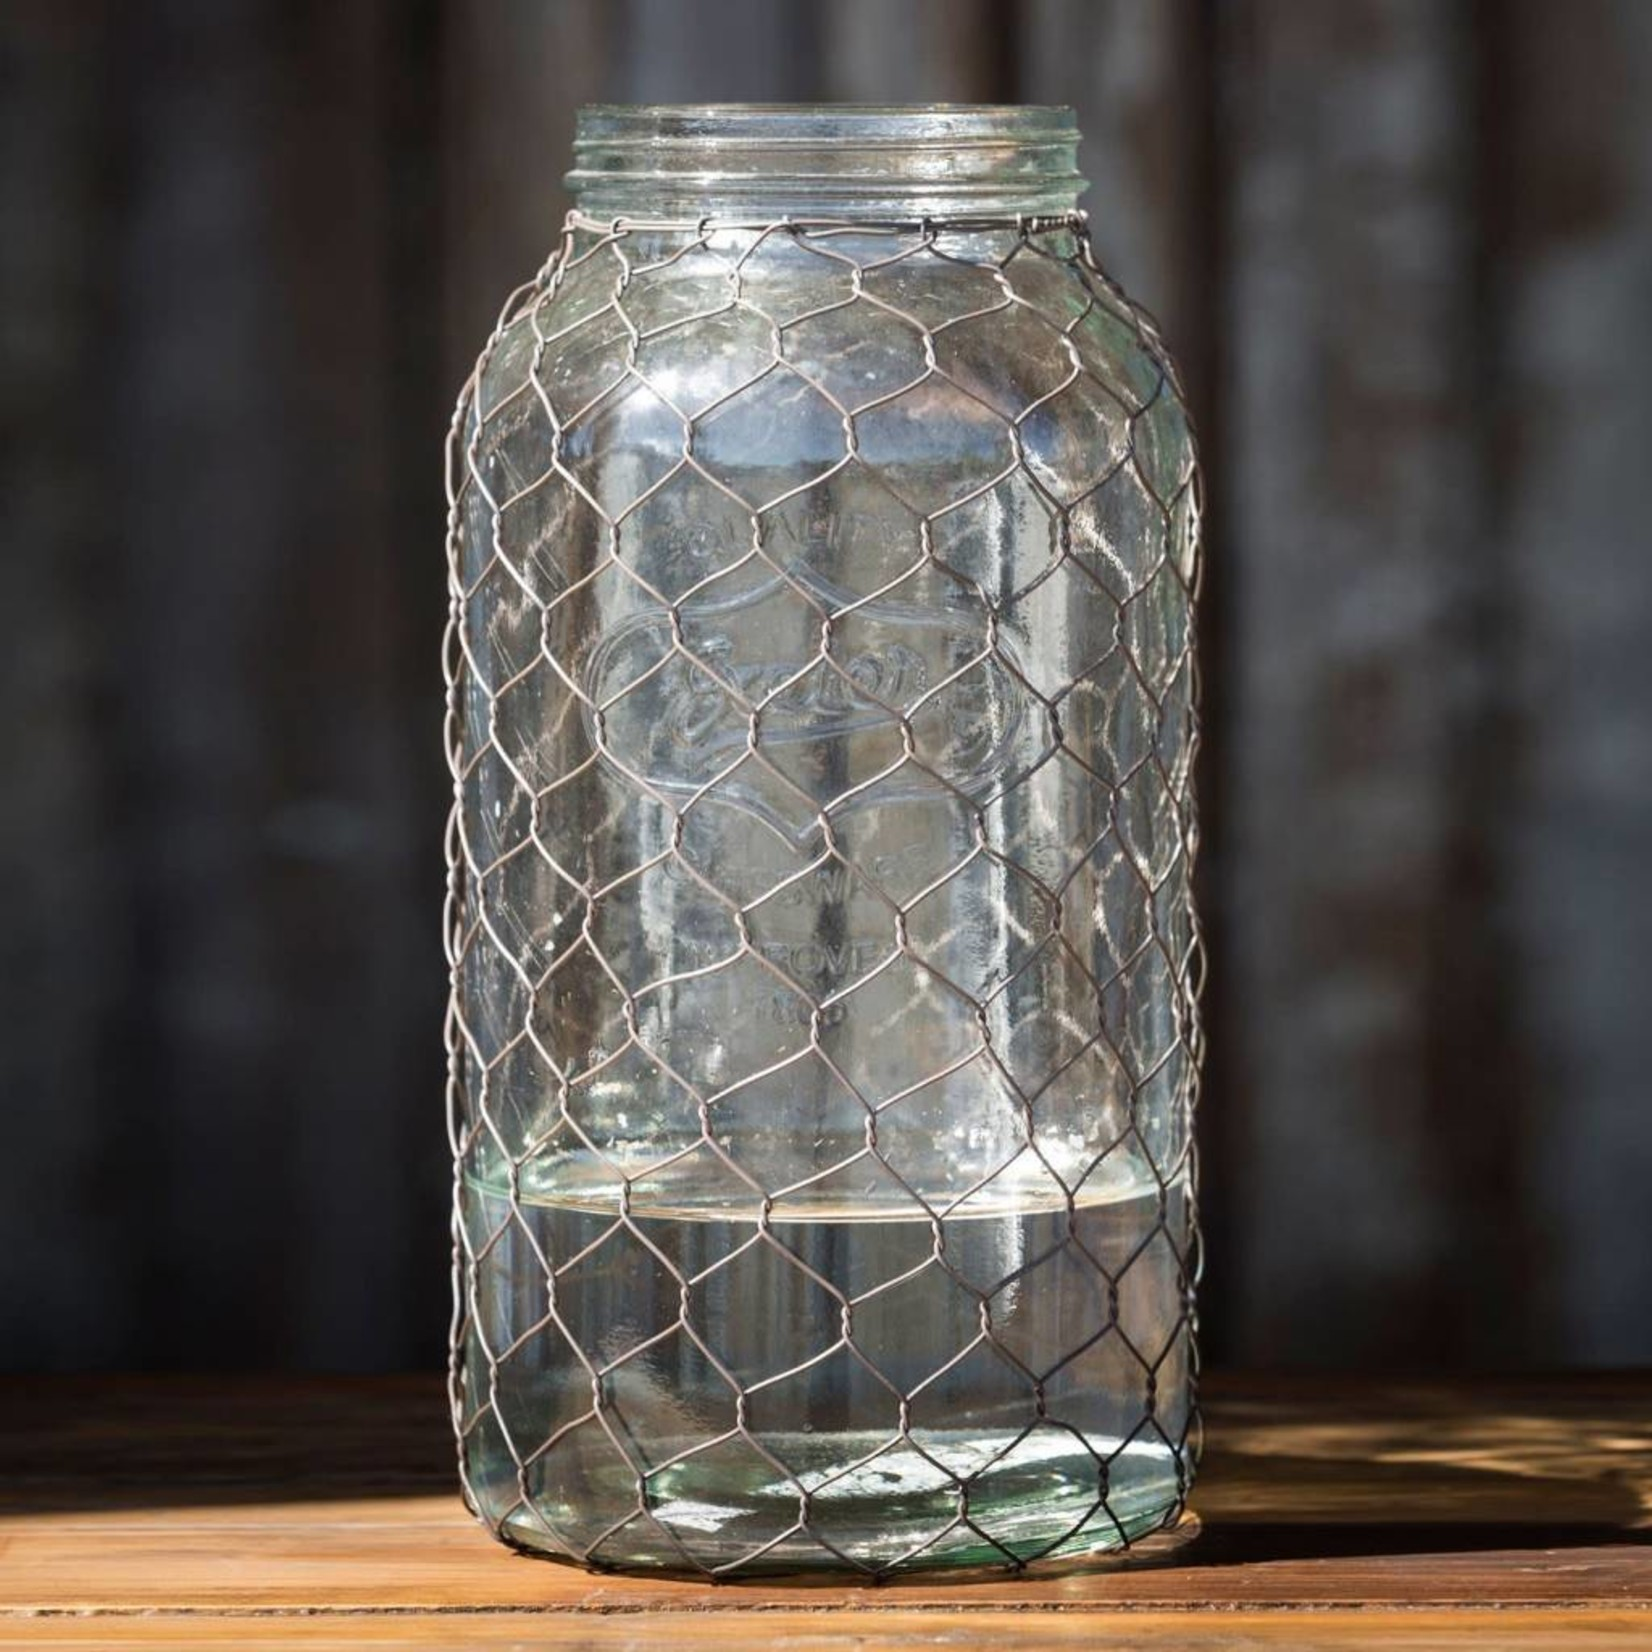 Extra Large Canning Jar With Poultry Wire